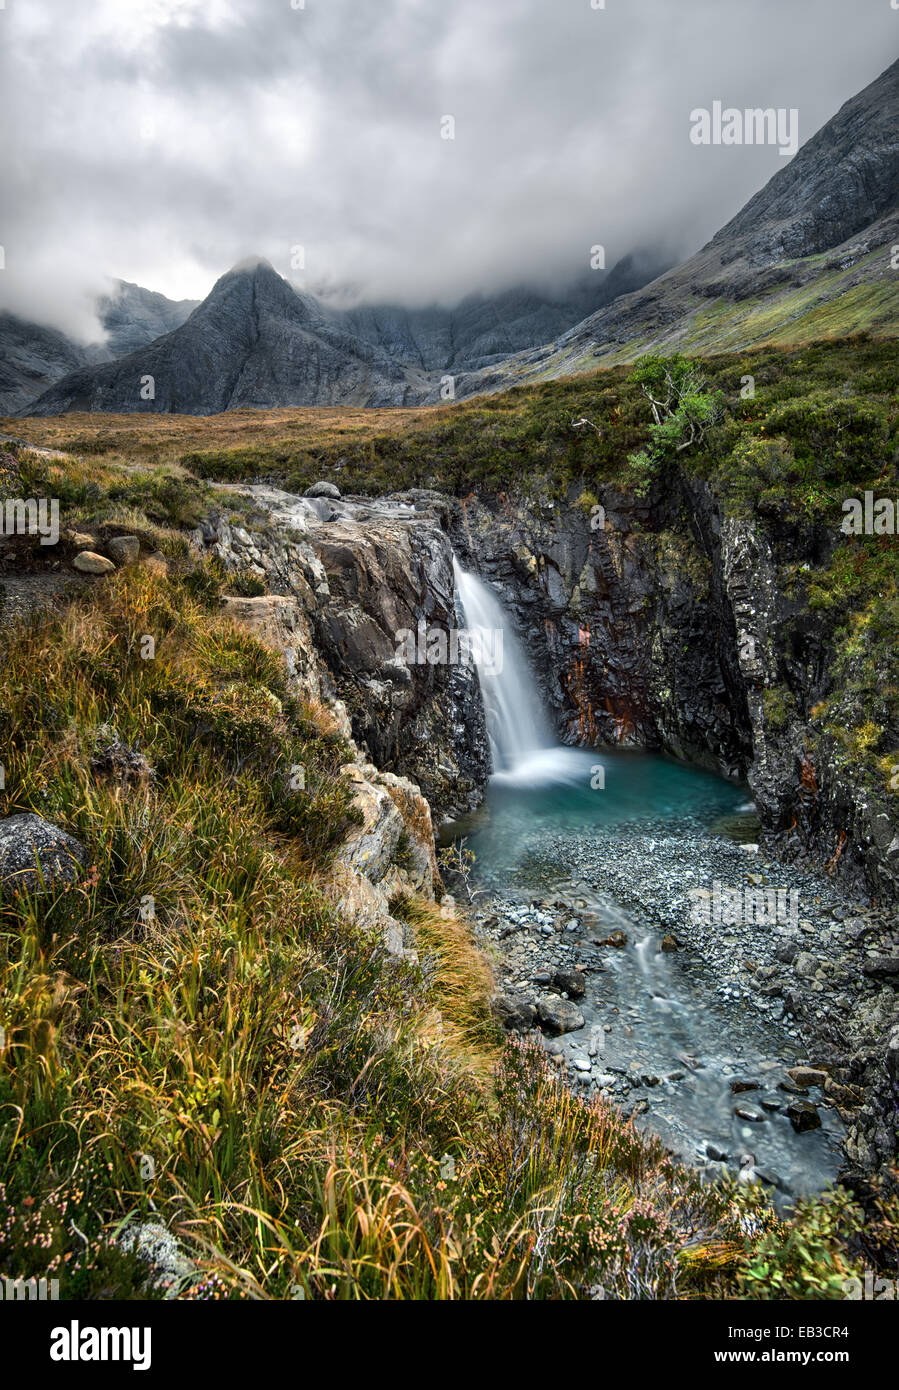 Germany/Deutschland, Fairy Pools Wasserfall am nebligen Tag Stockbild